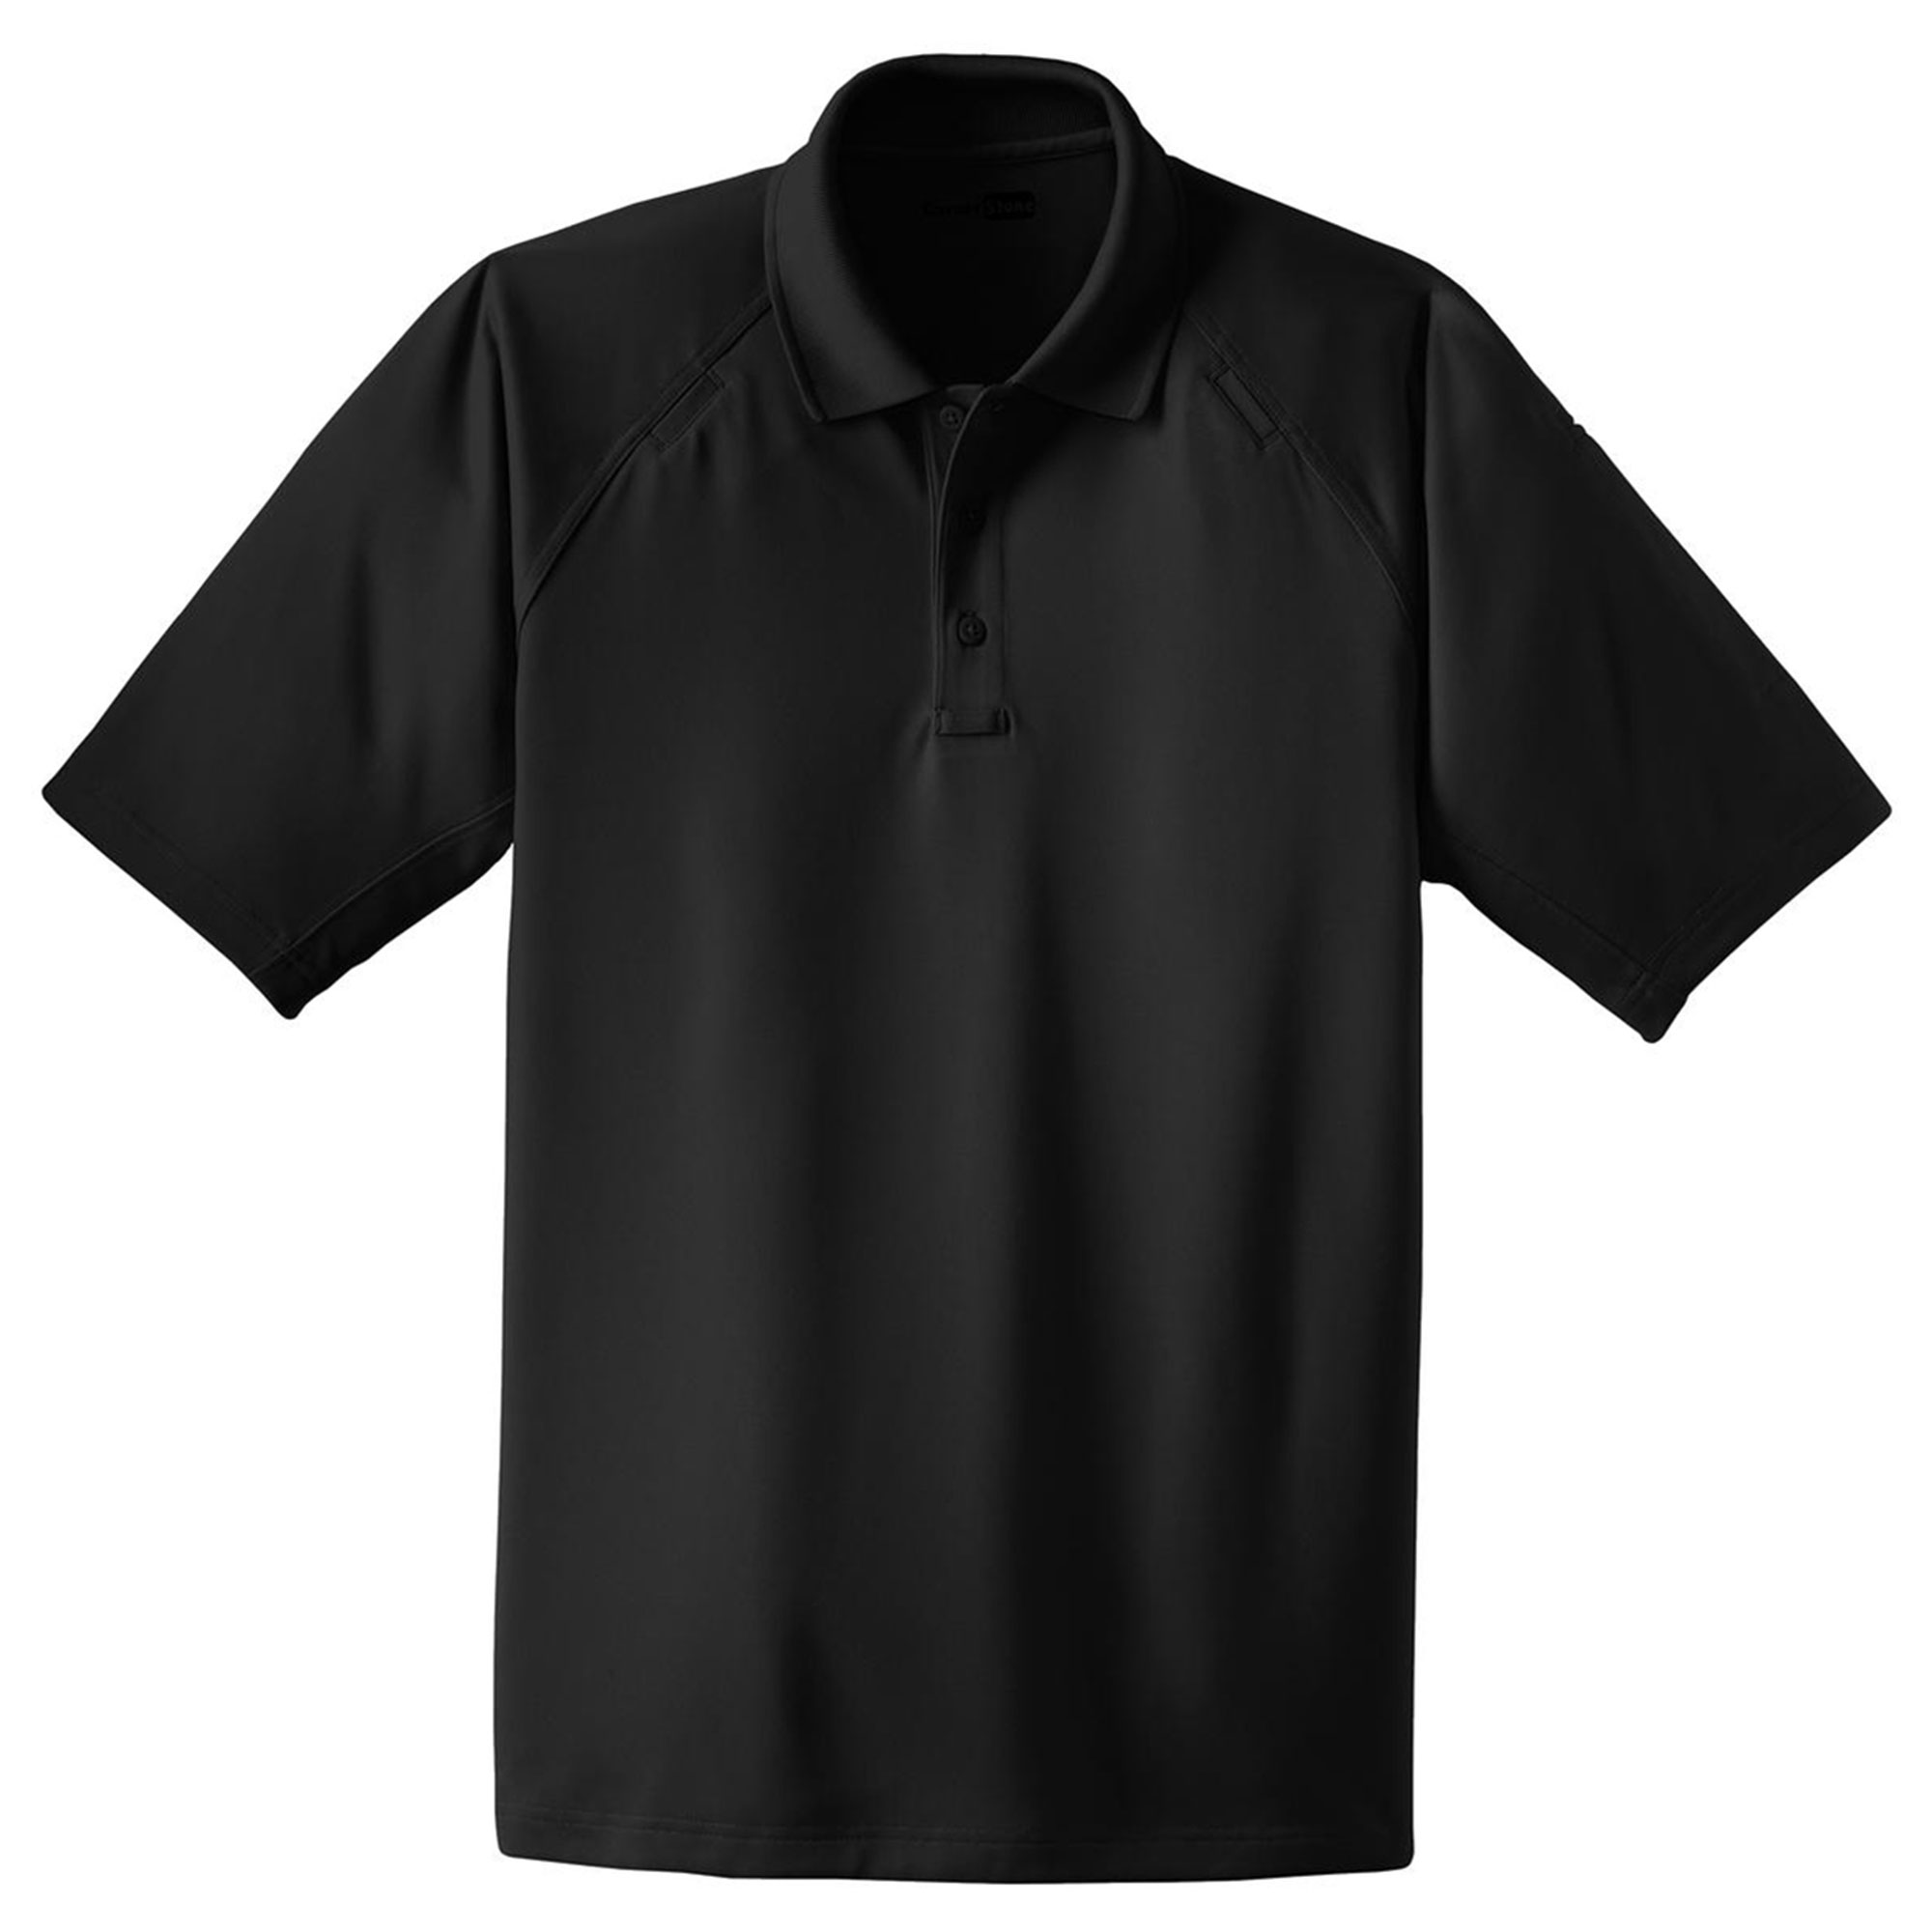 Cornerstone Men's Big And Tall Knit Collar Tactical Polo Shirt